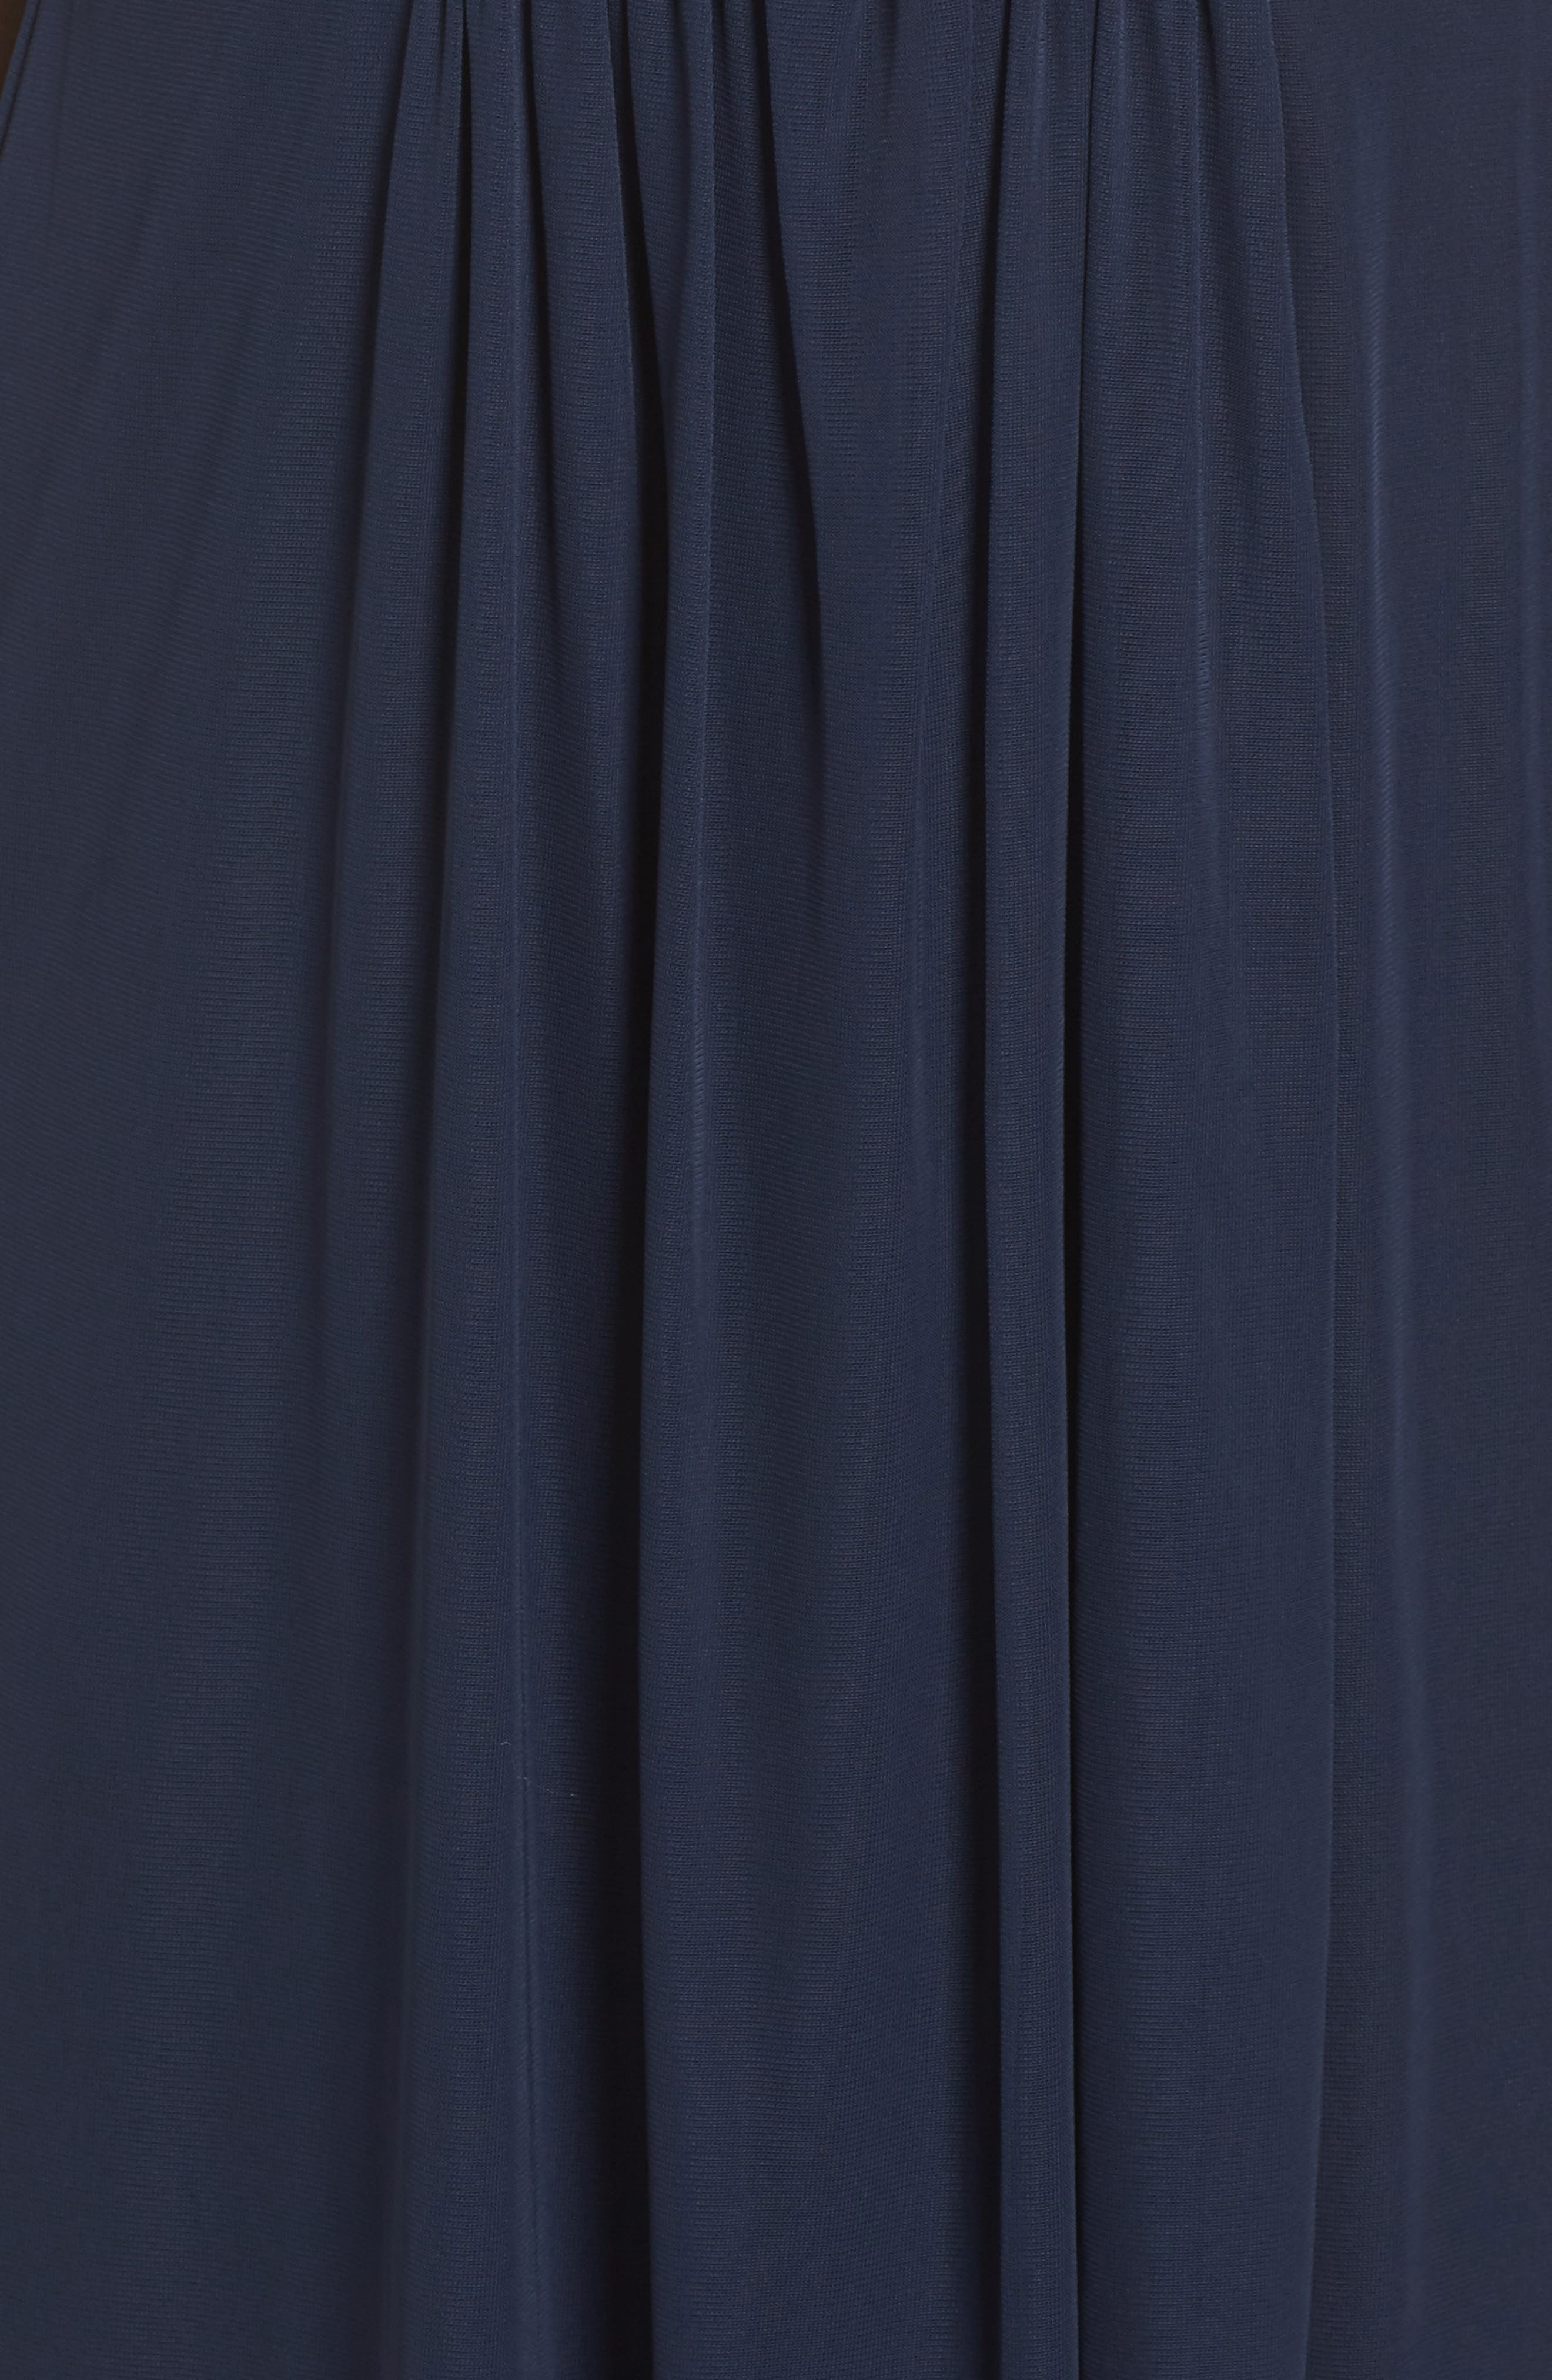 Embellished Gown,                             Alternate thumbnail 5, color,                             412